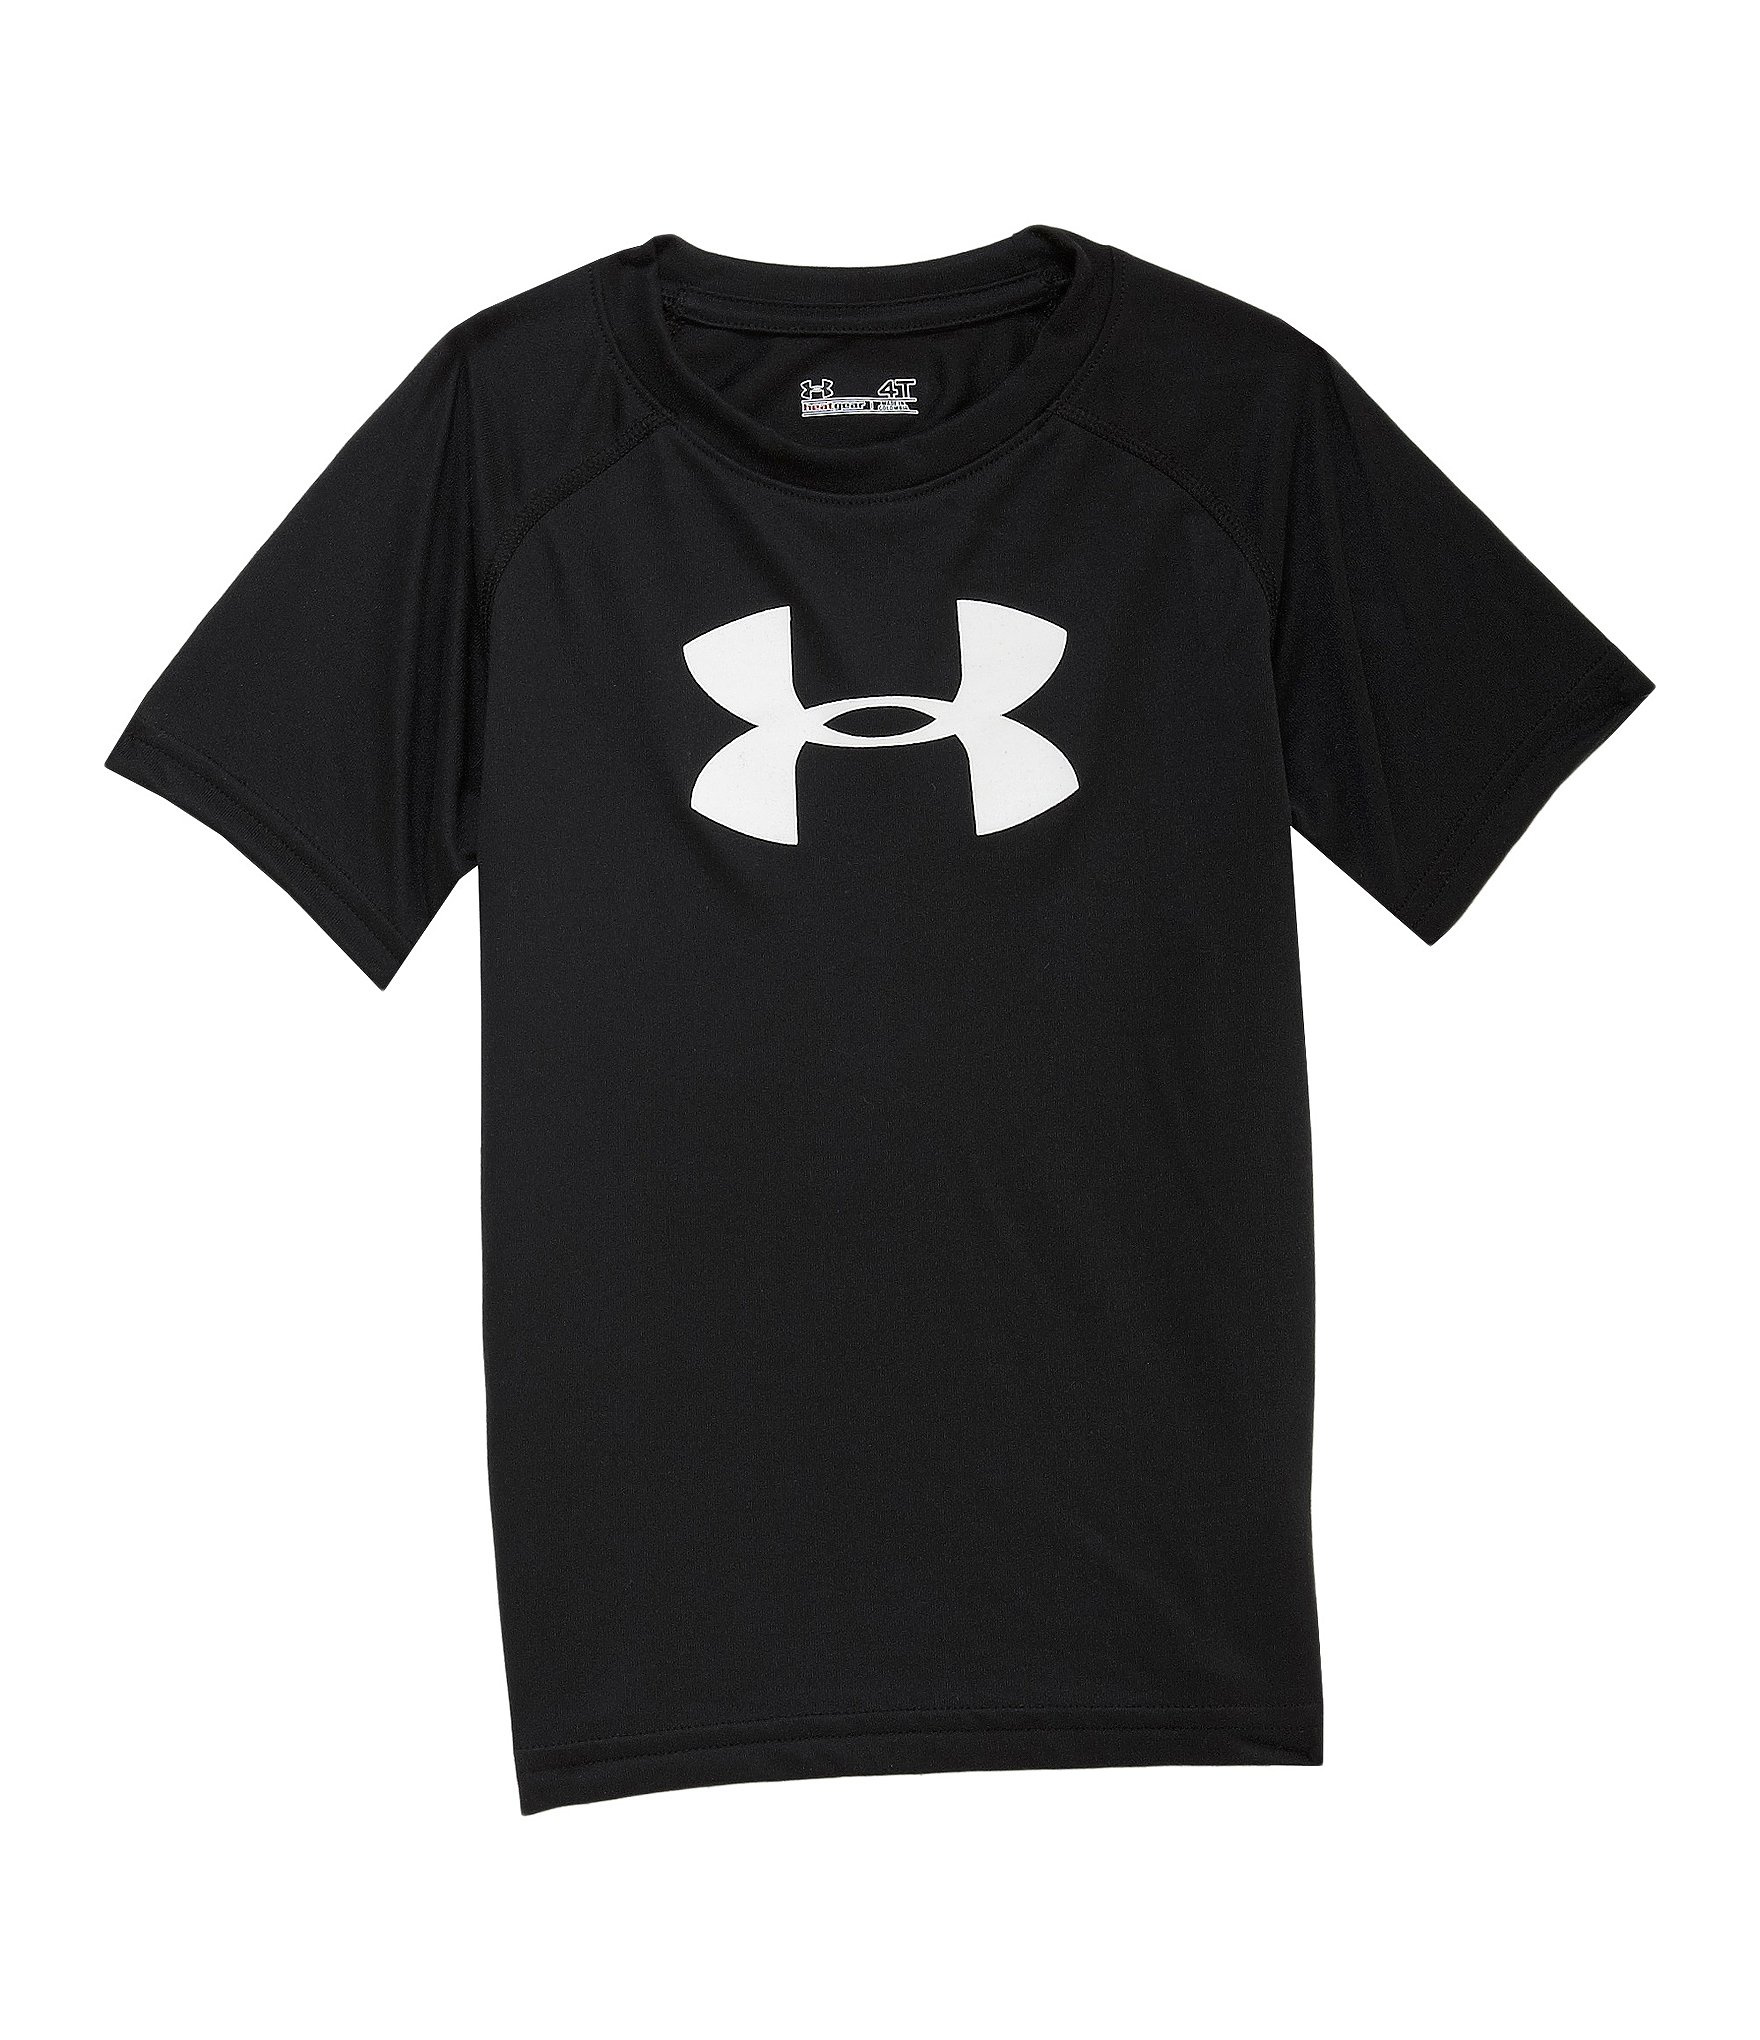 under armour shirts for boys. under armour shirts for boys h